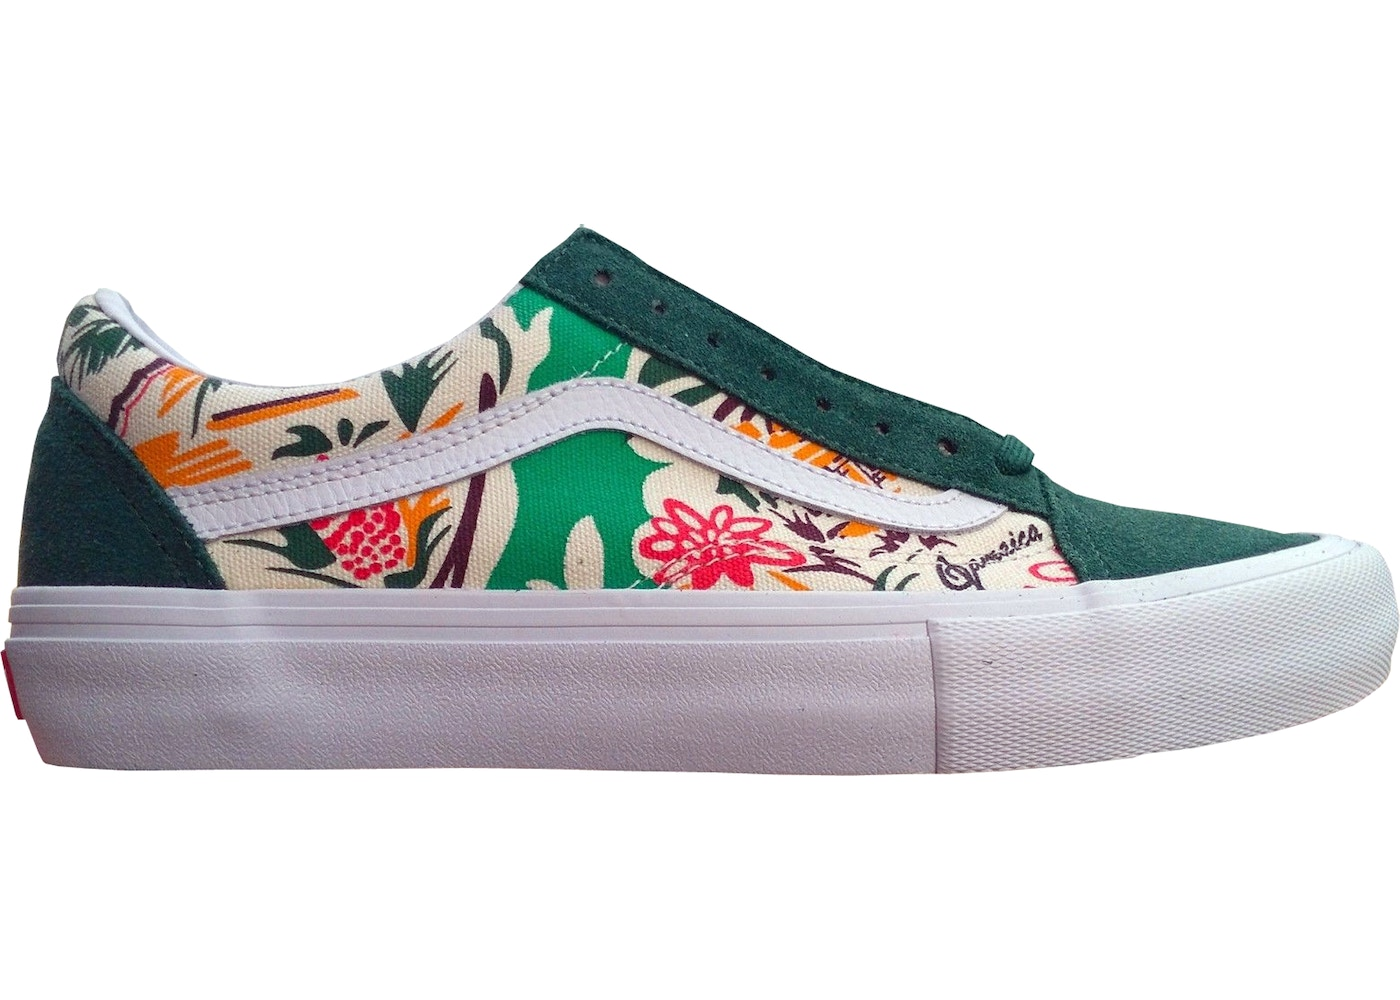 3be7a1feadd09f Vans Old Skool Concepts Jamaica Green - VN000ZD4NQU